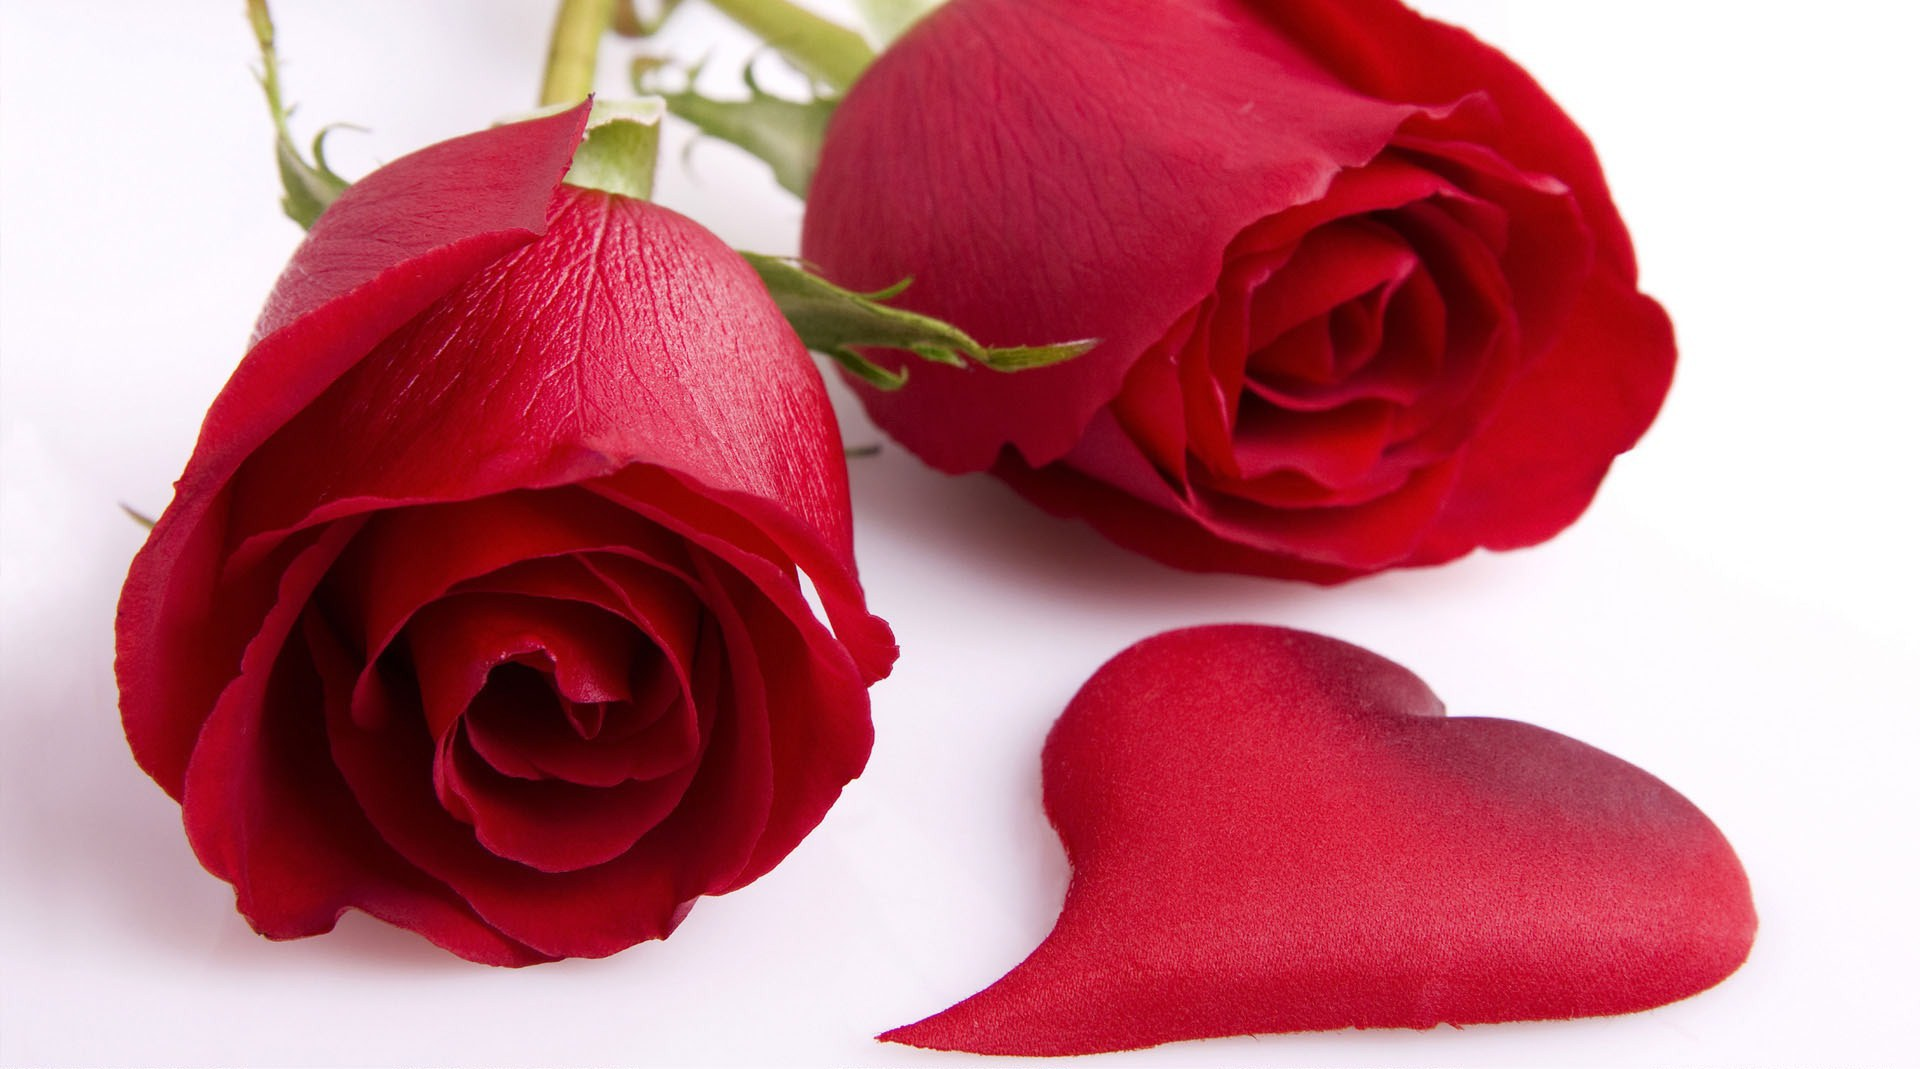 valentines day rose petals wallpaper free hd desktop